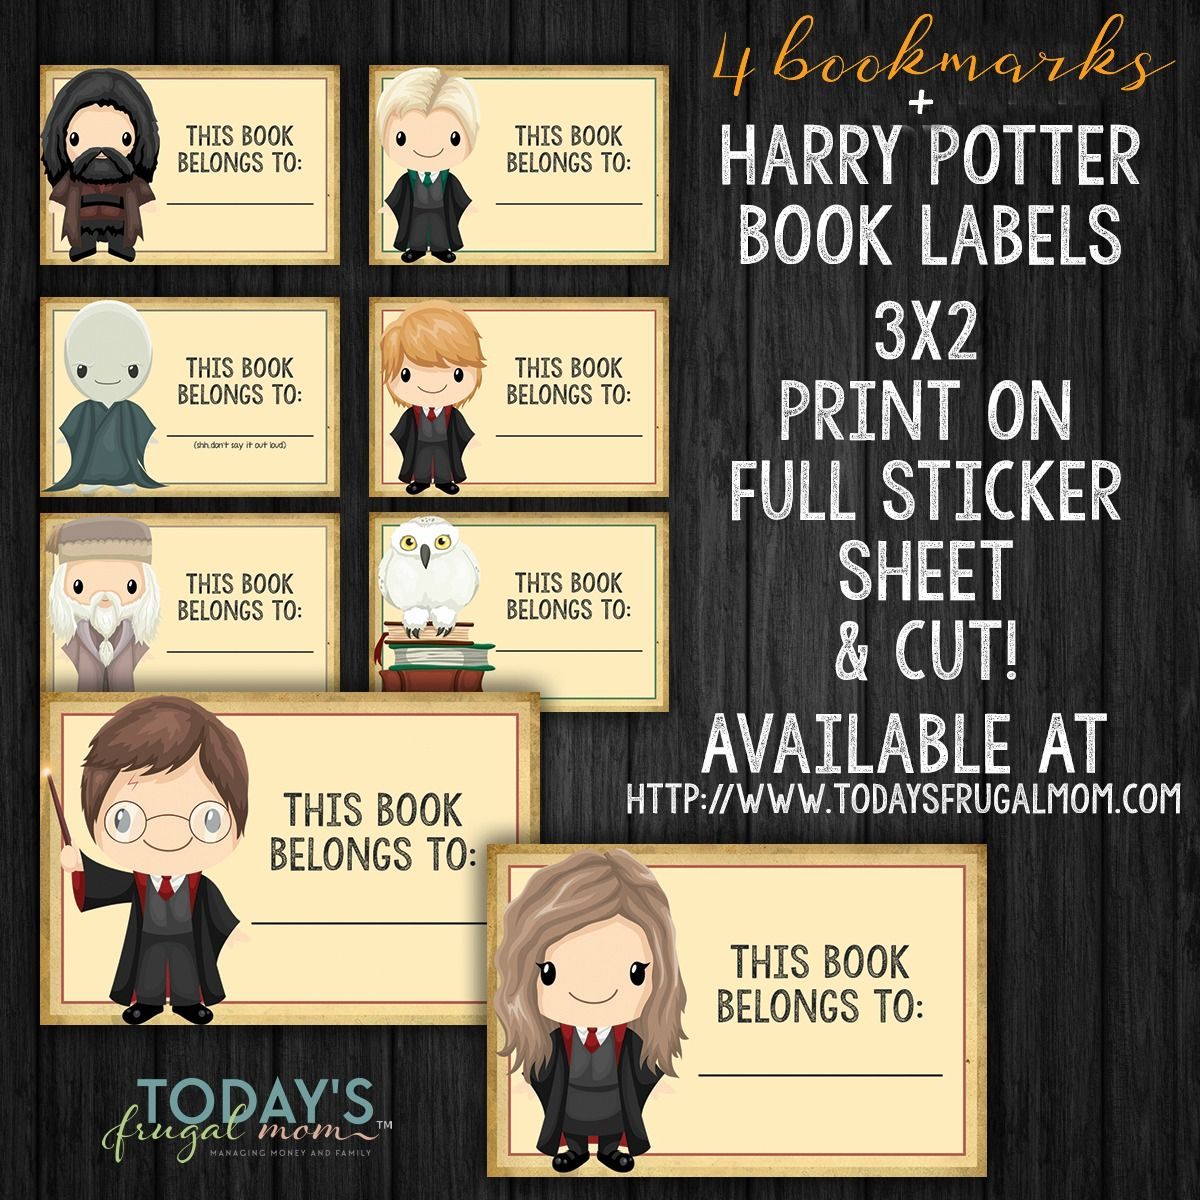 picture regarding Free Printable Harry Potter Bookmarks identified as Printable Harry Potter Bookmarks + Guide Labels Clroom